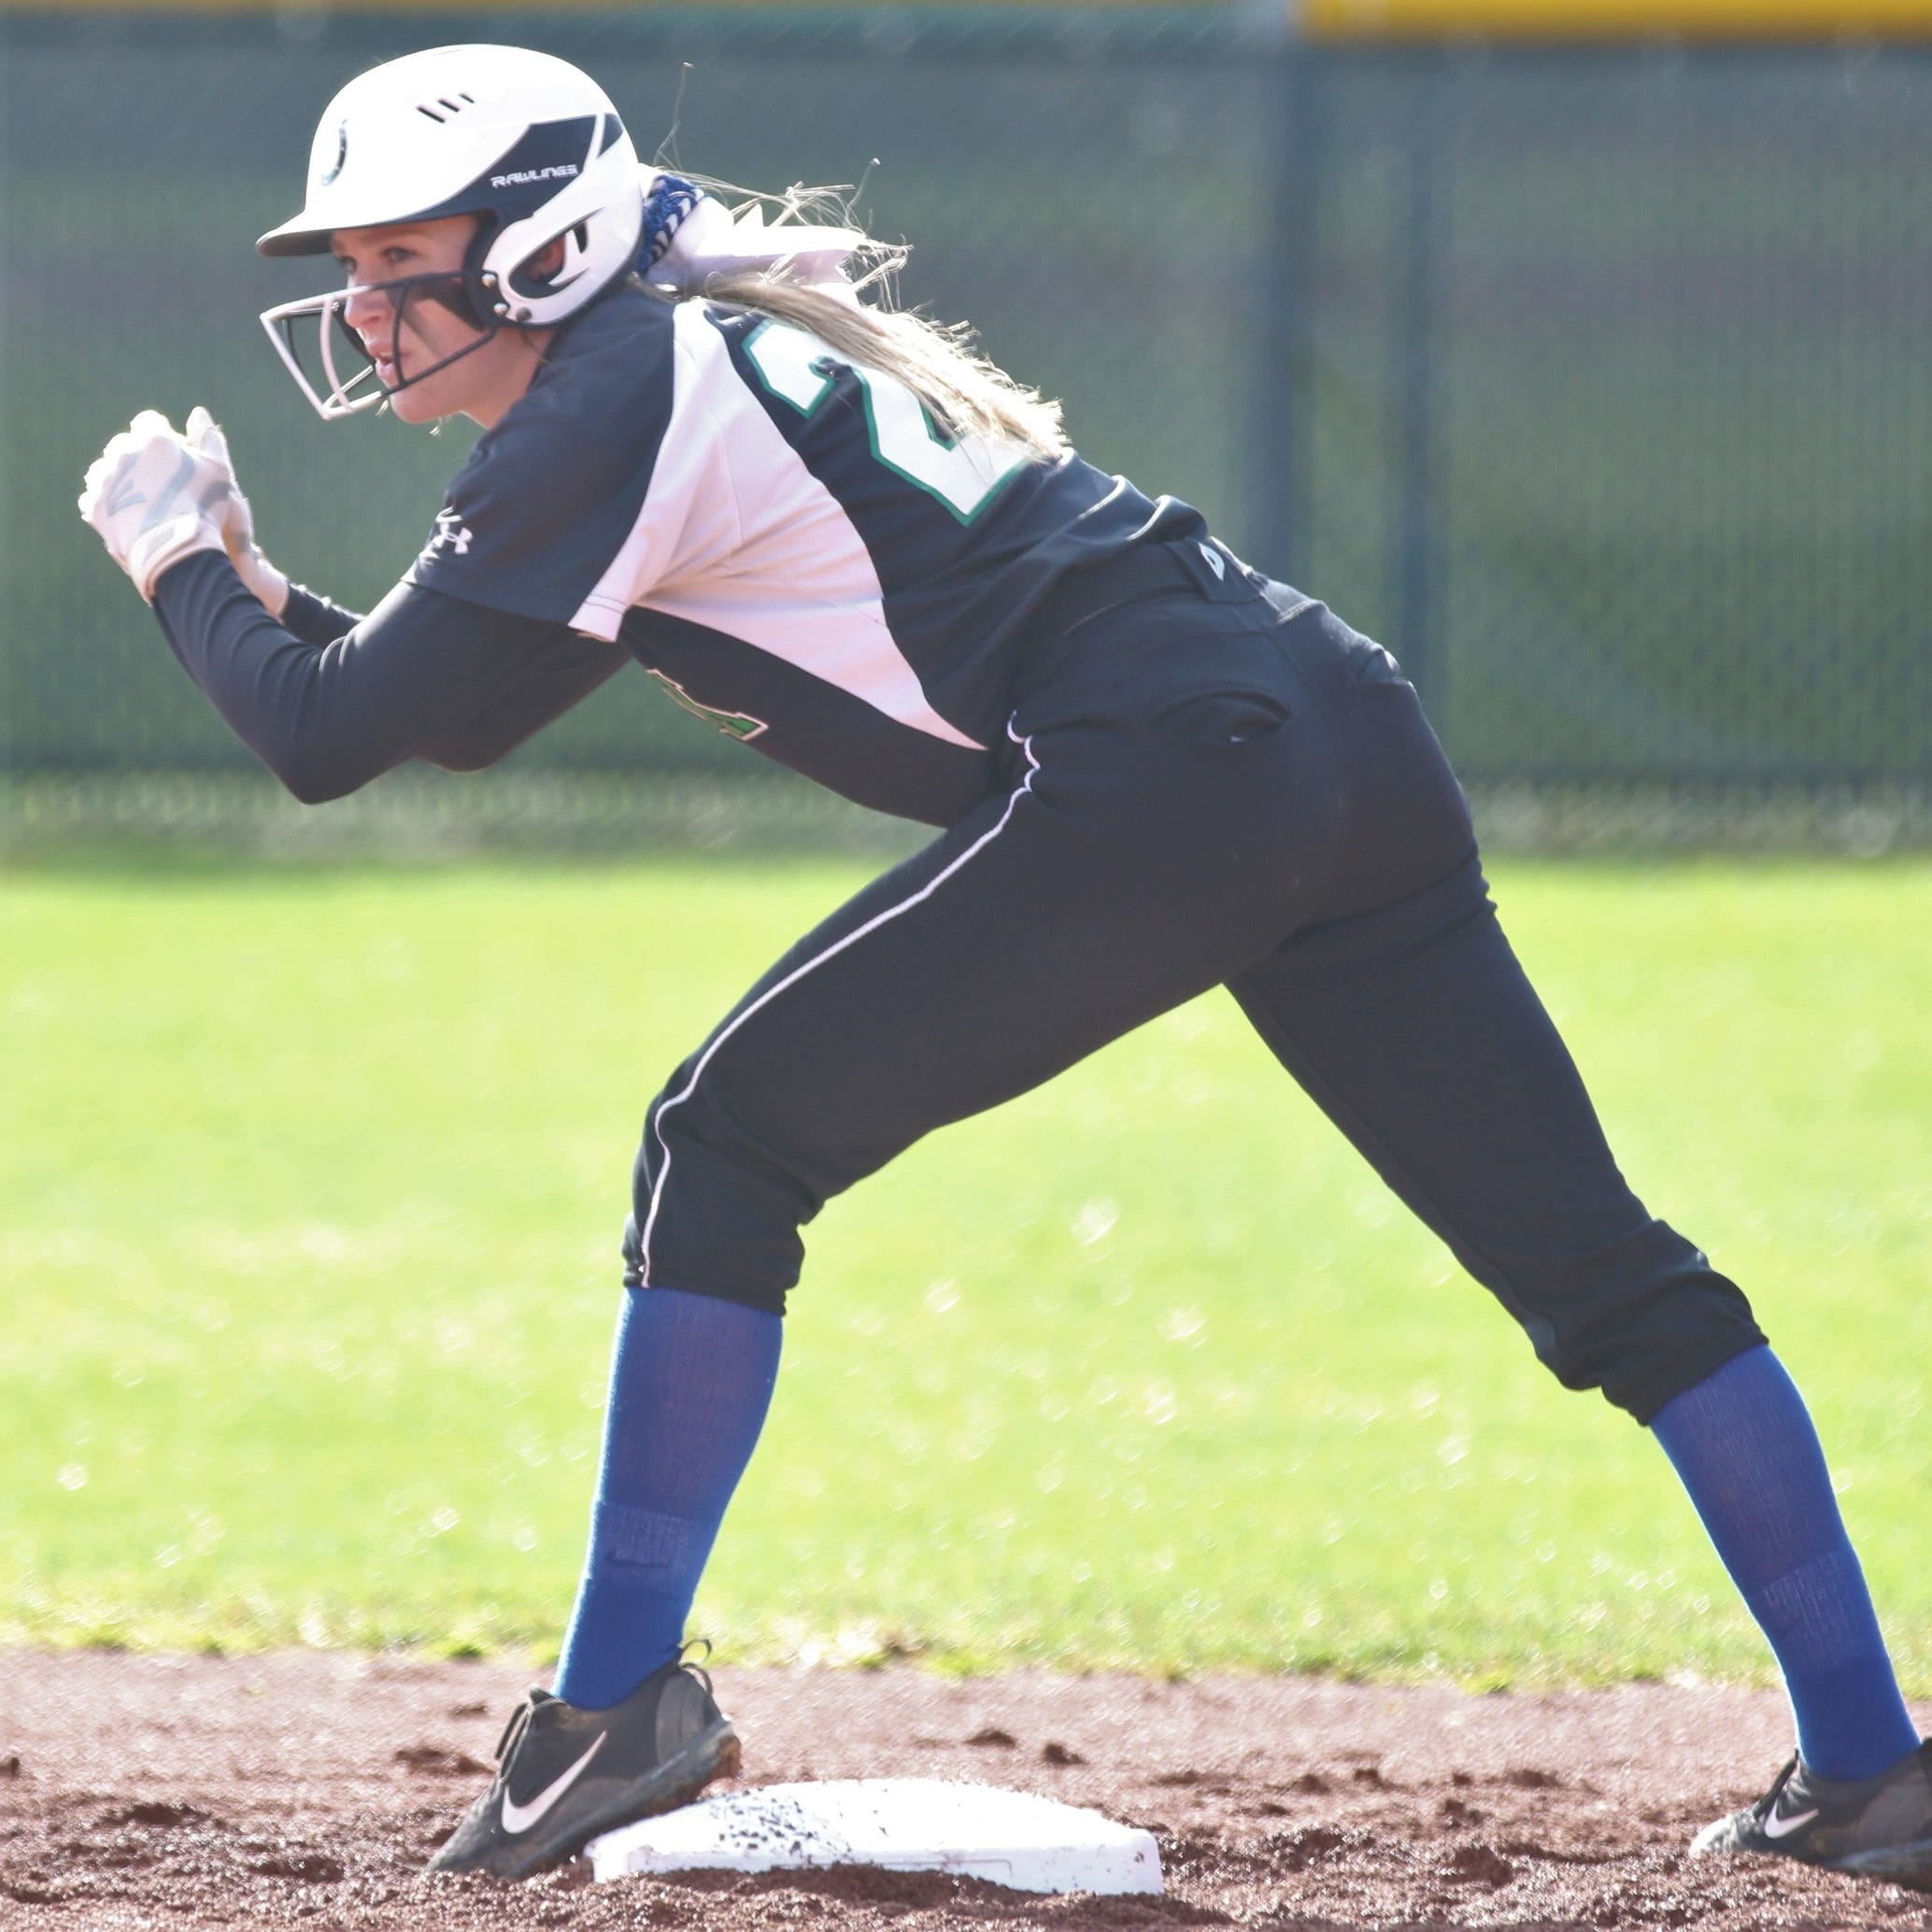 Grand thieves: Clear Fork's Crowner, Plymouth's Elliott share base-stealing secrets